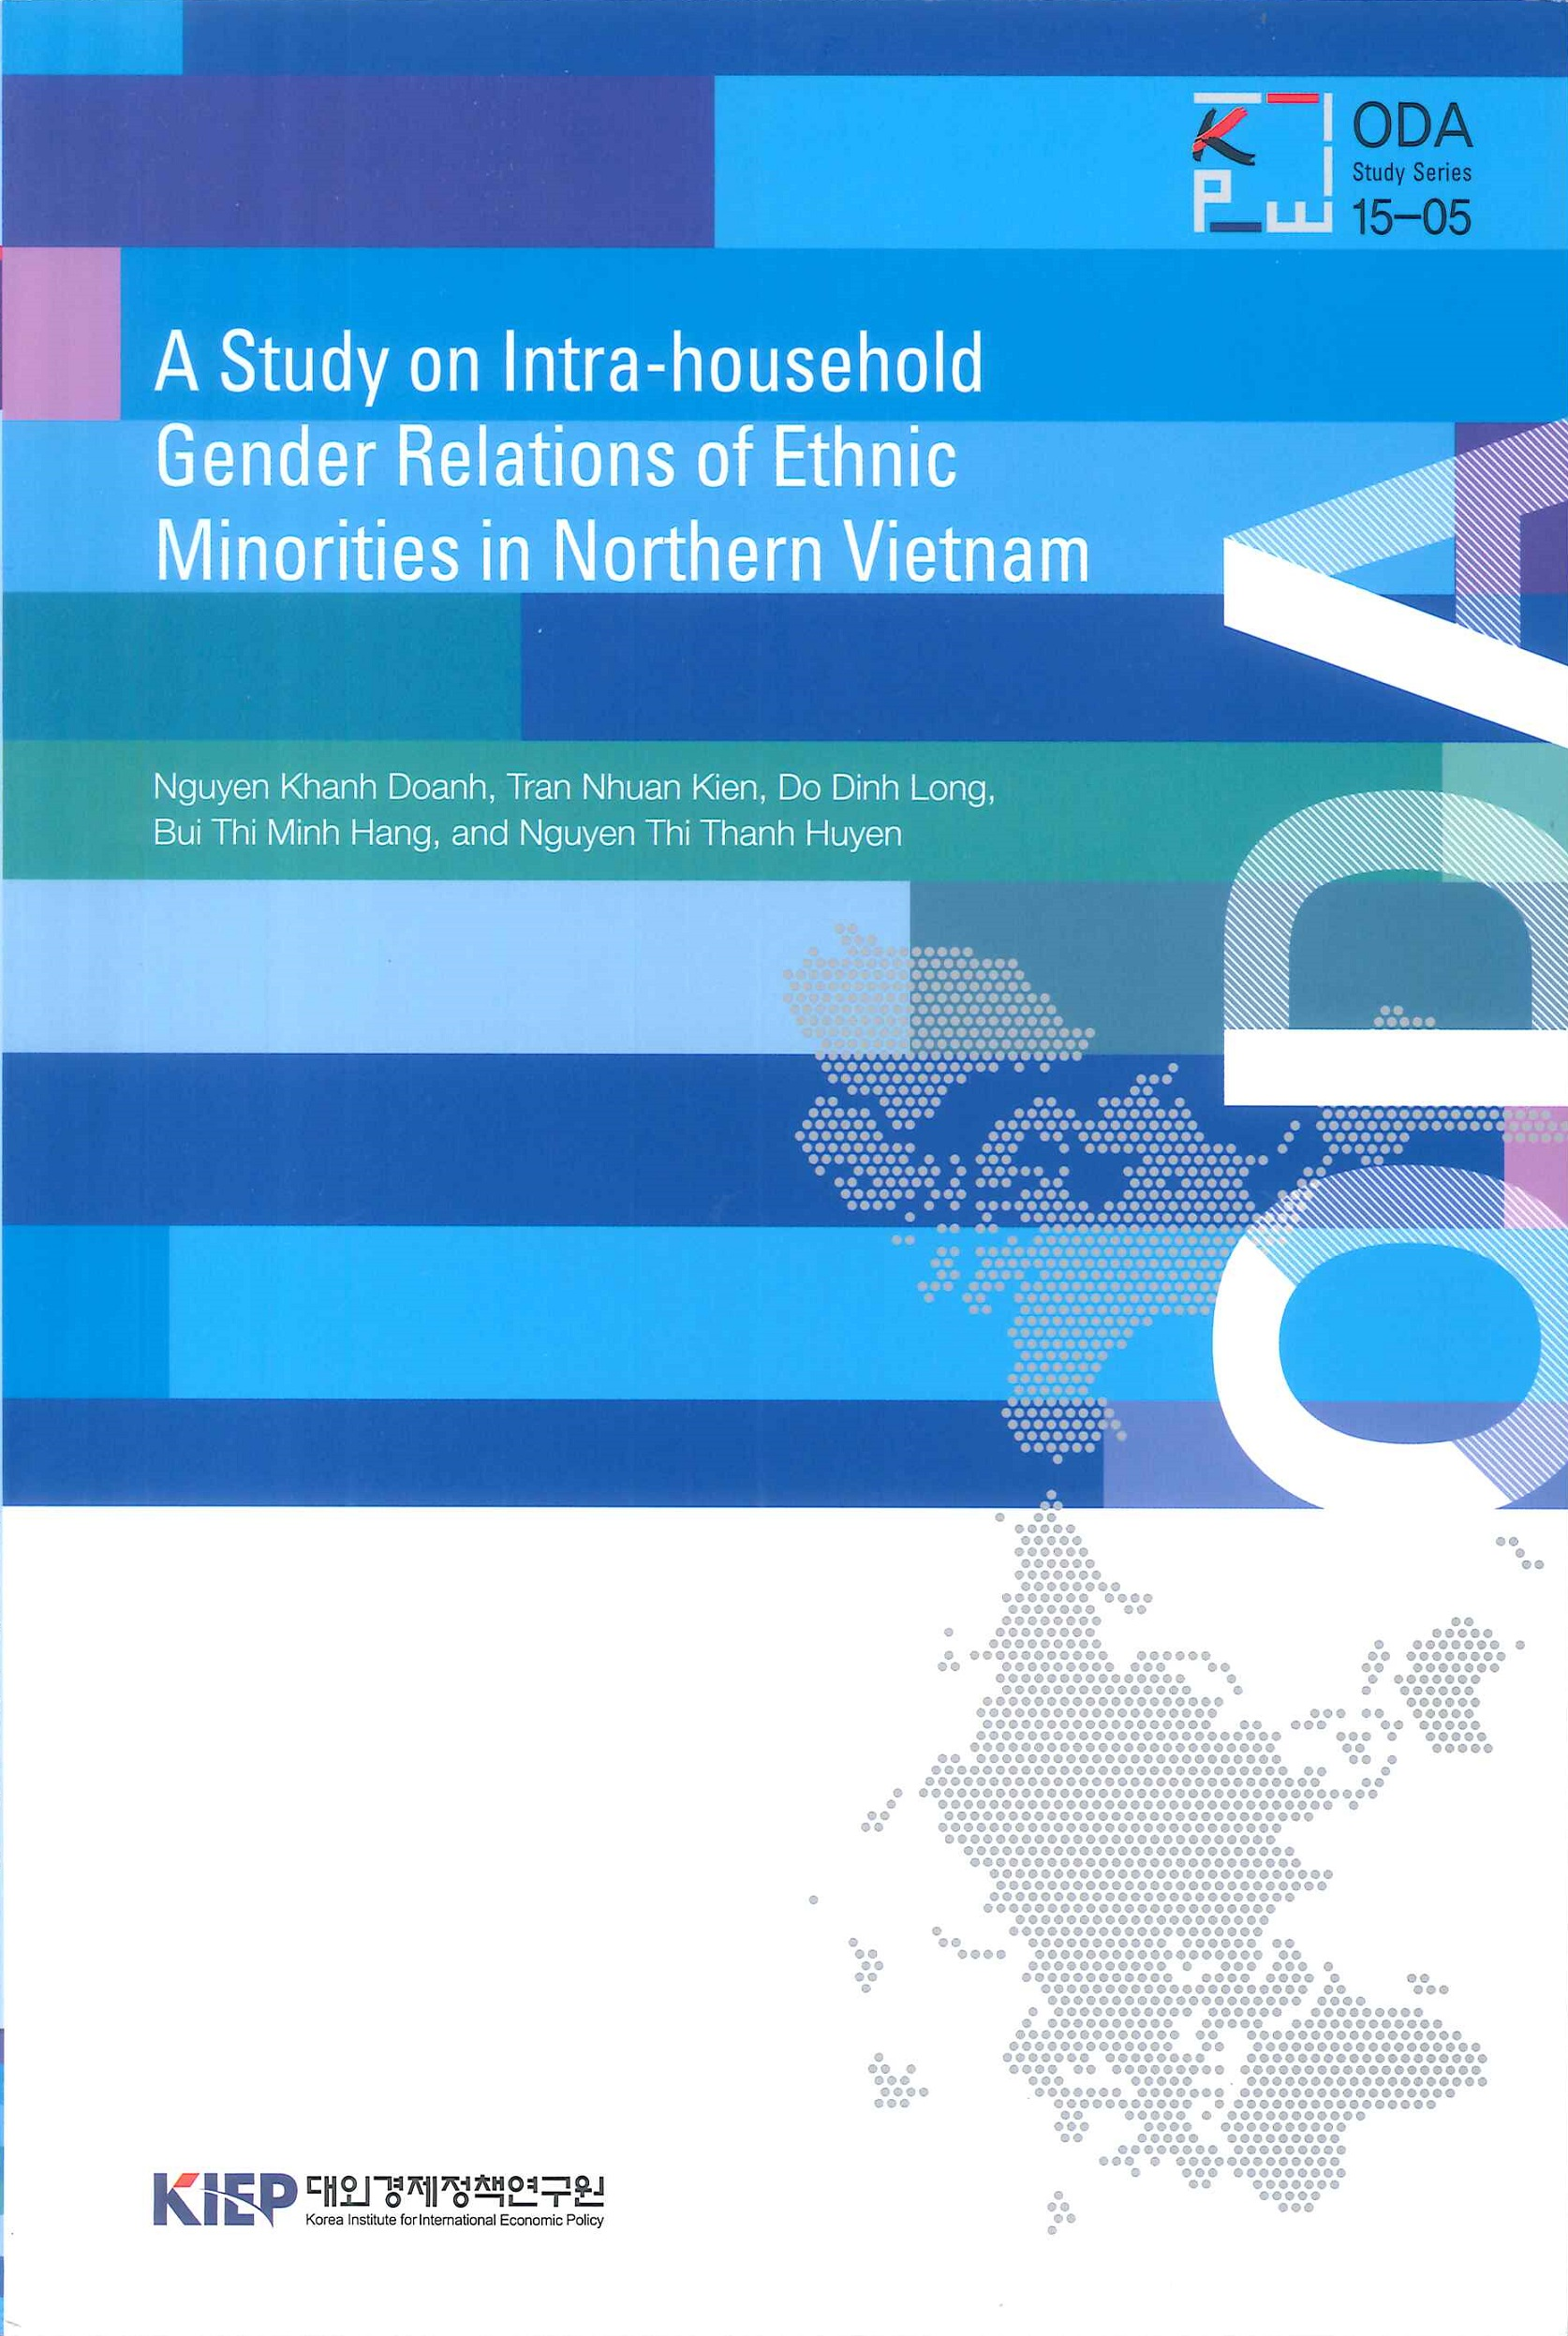 A study on intra-household gender relations of ethnic minorities in Northern Vietnam